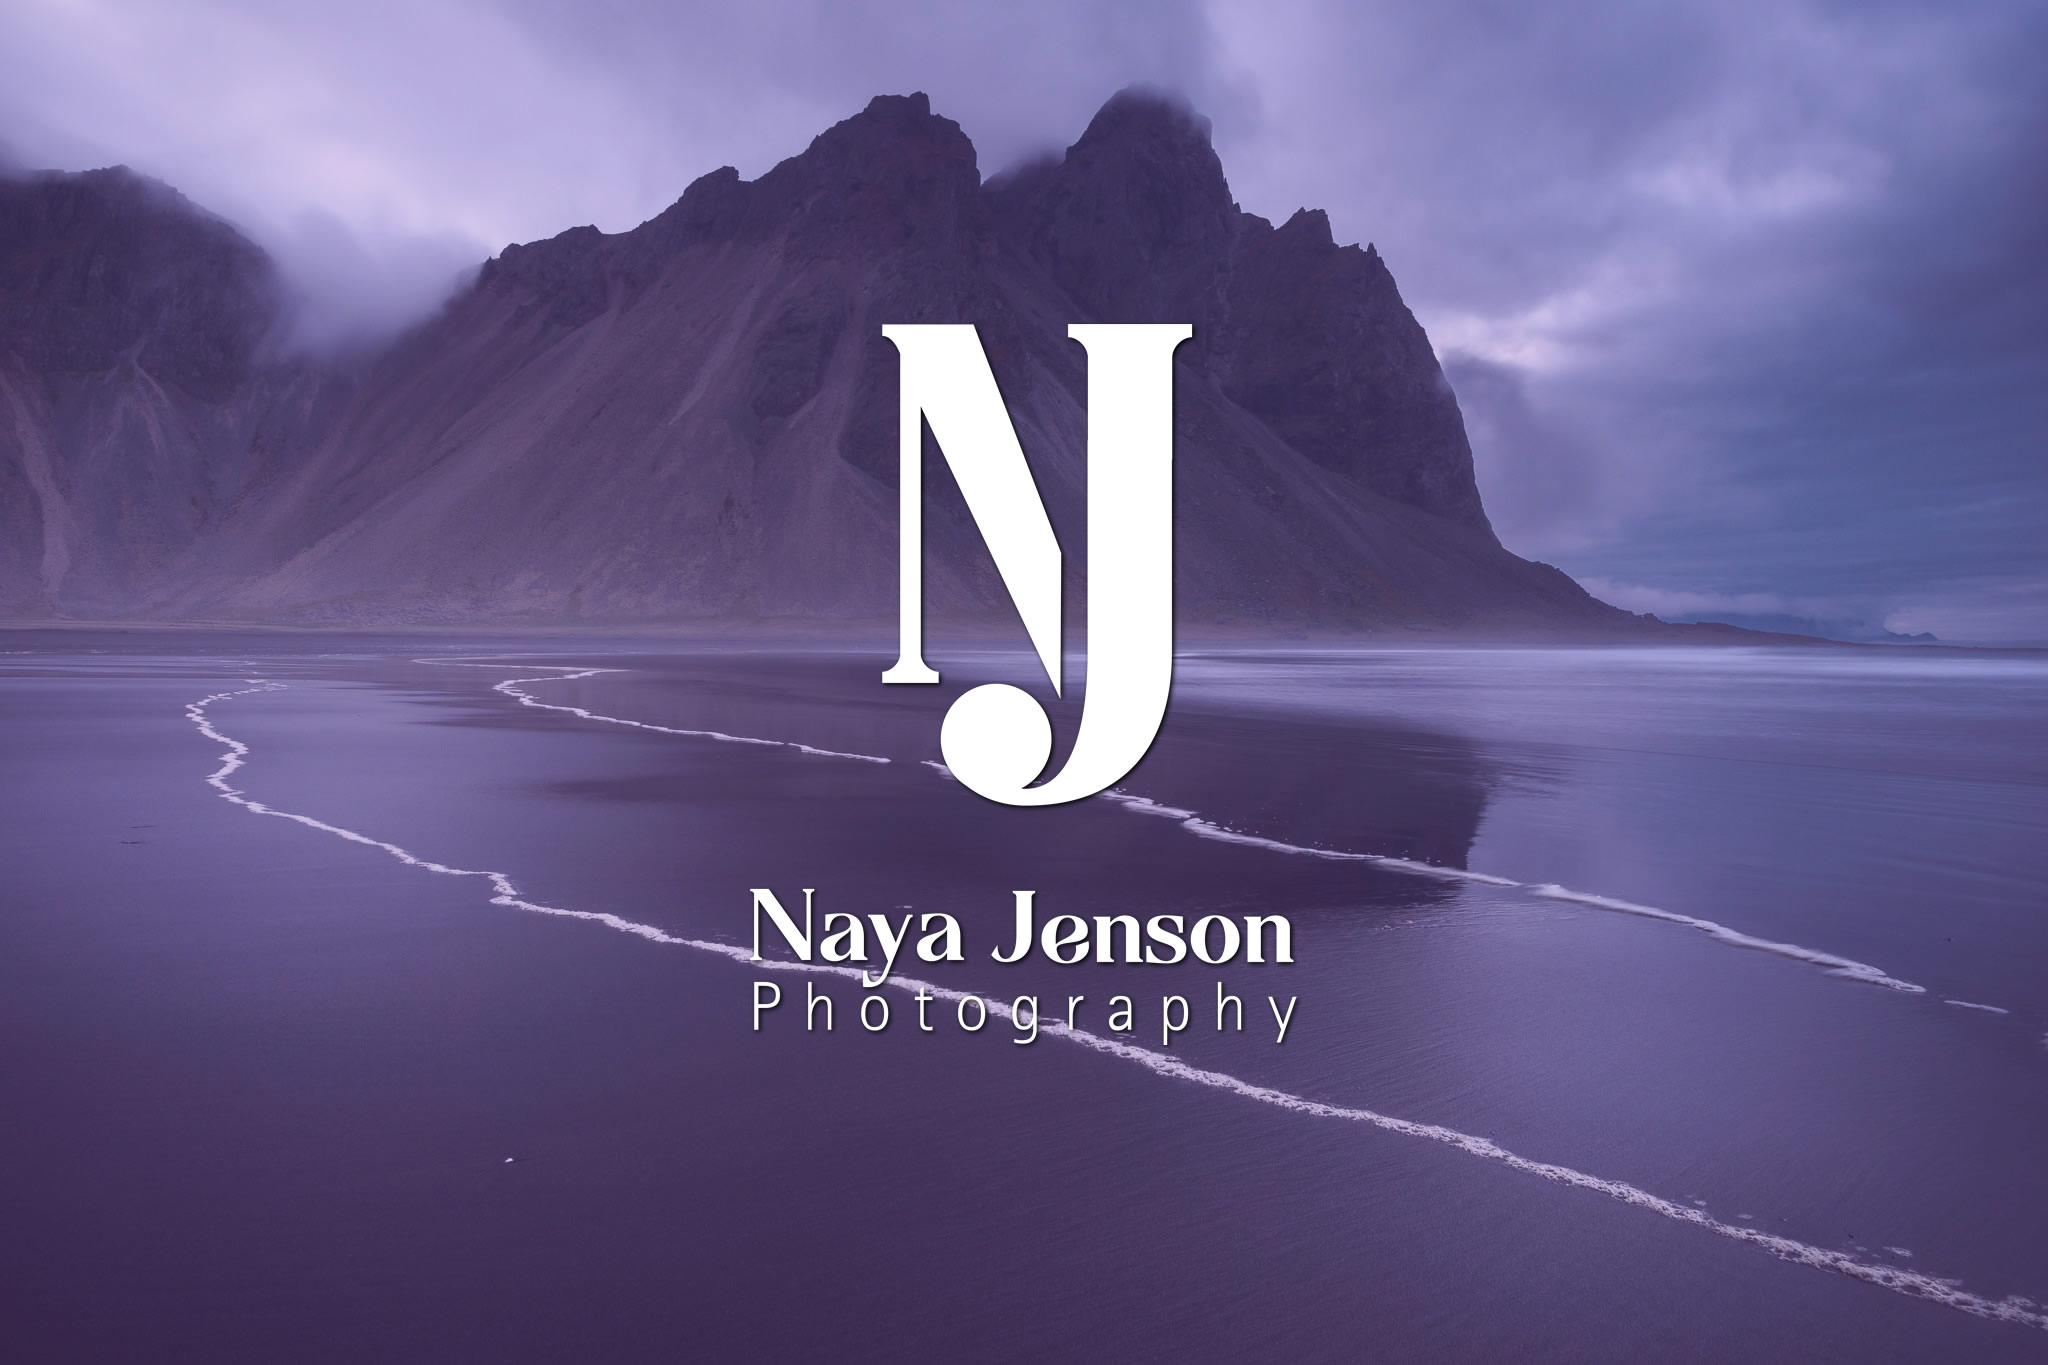 Naya Jenson Potography - The Logo Creative